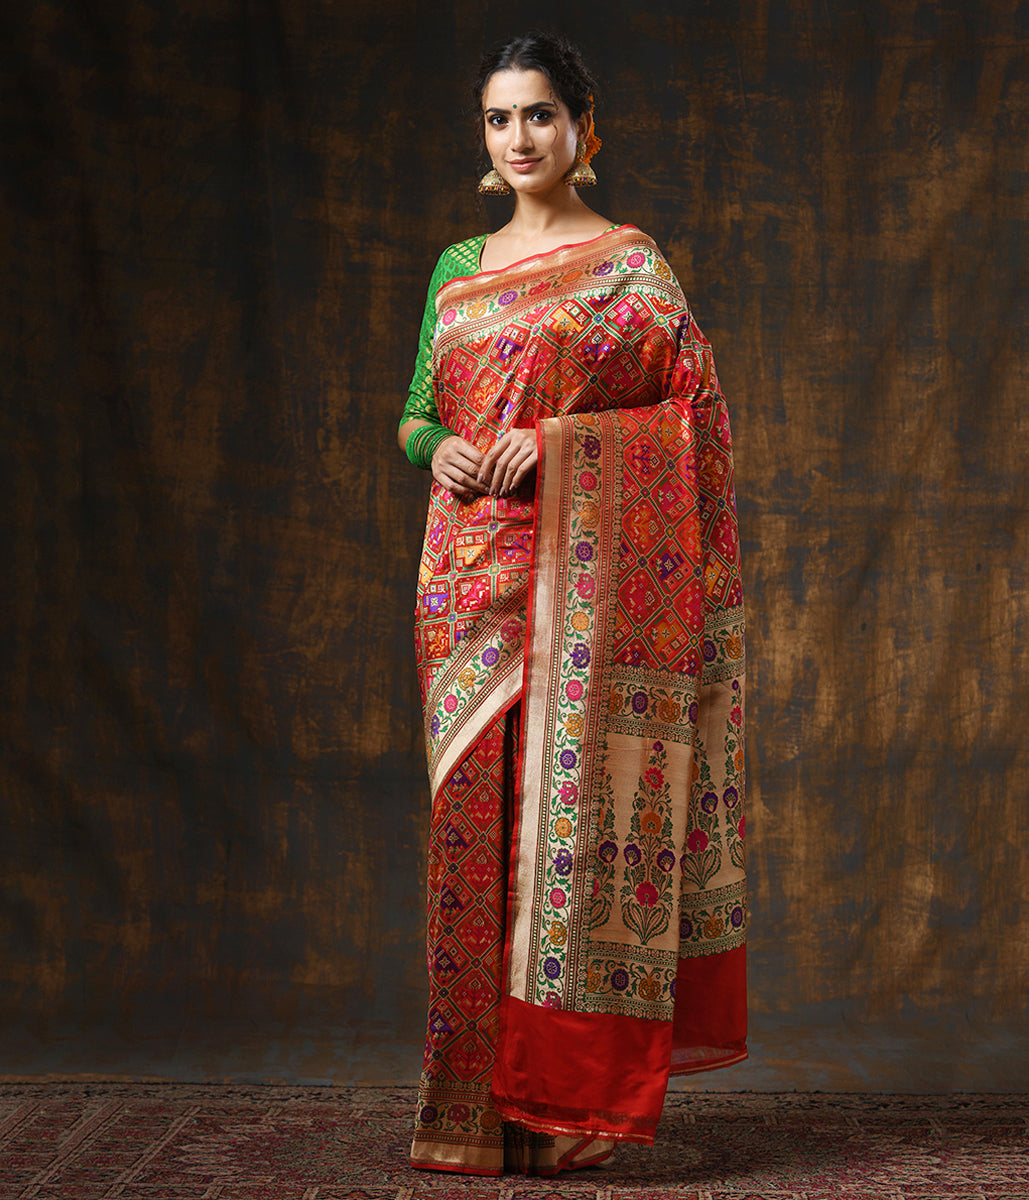 Handwoven Red Banarasi Patola with Meenakari